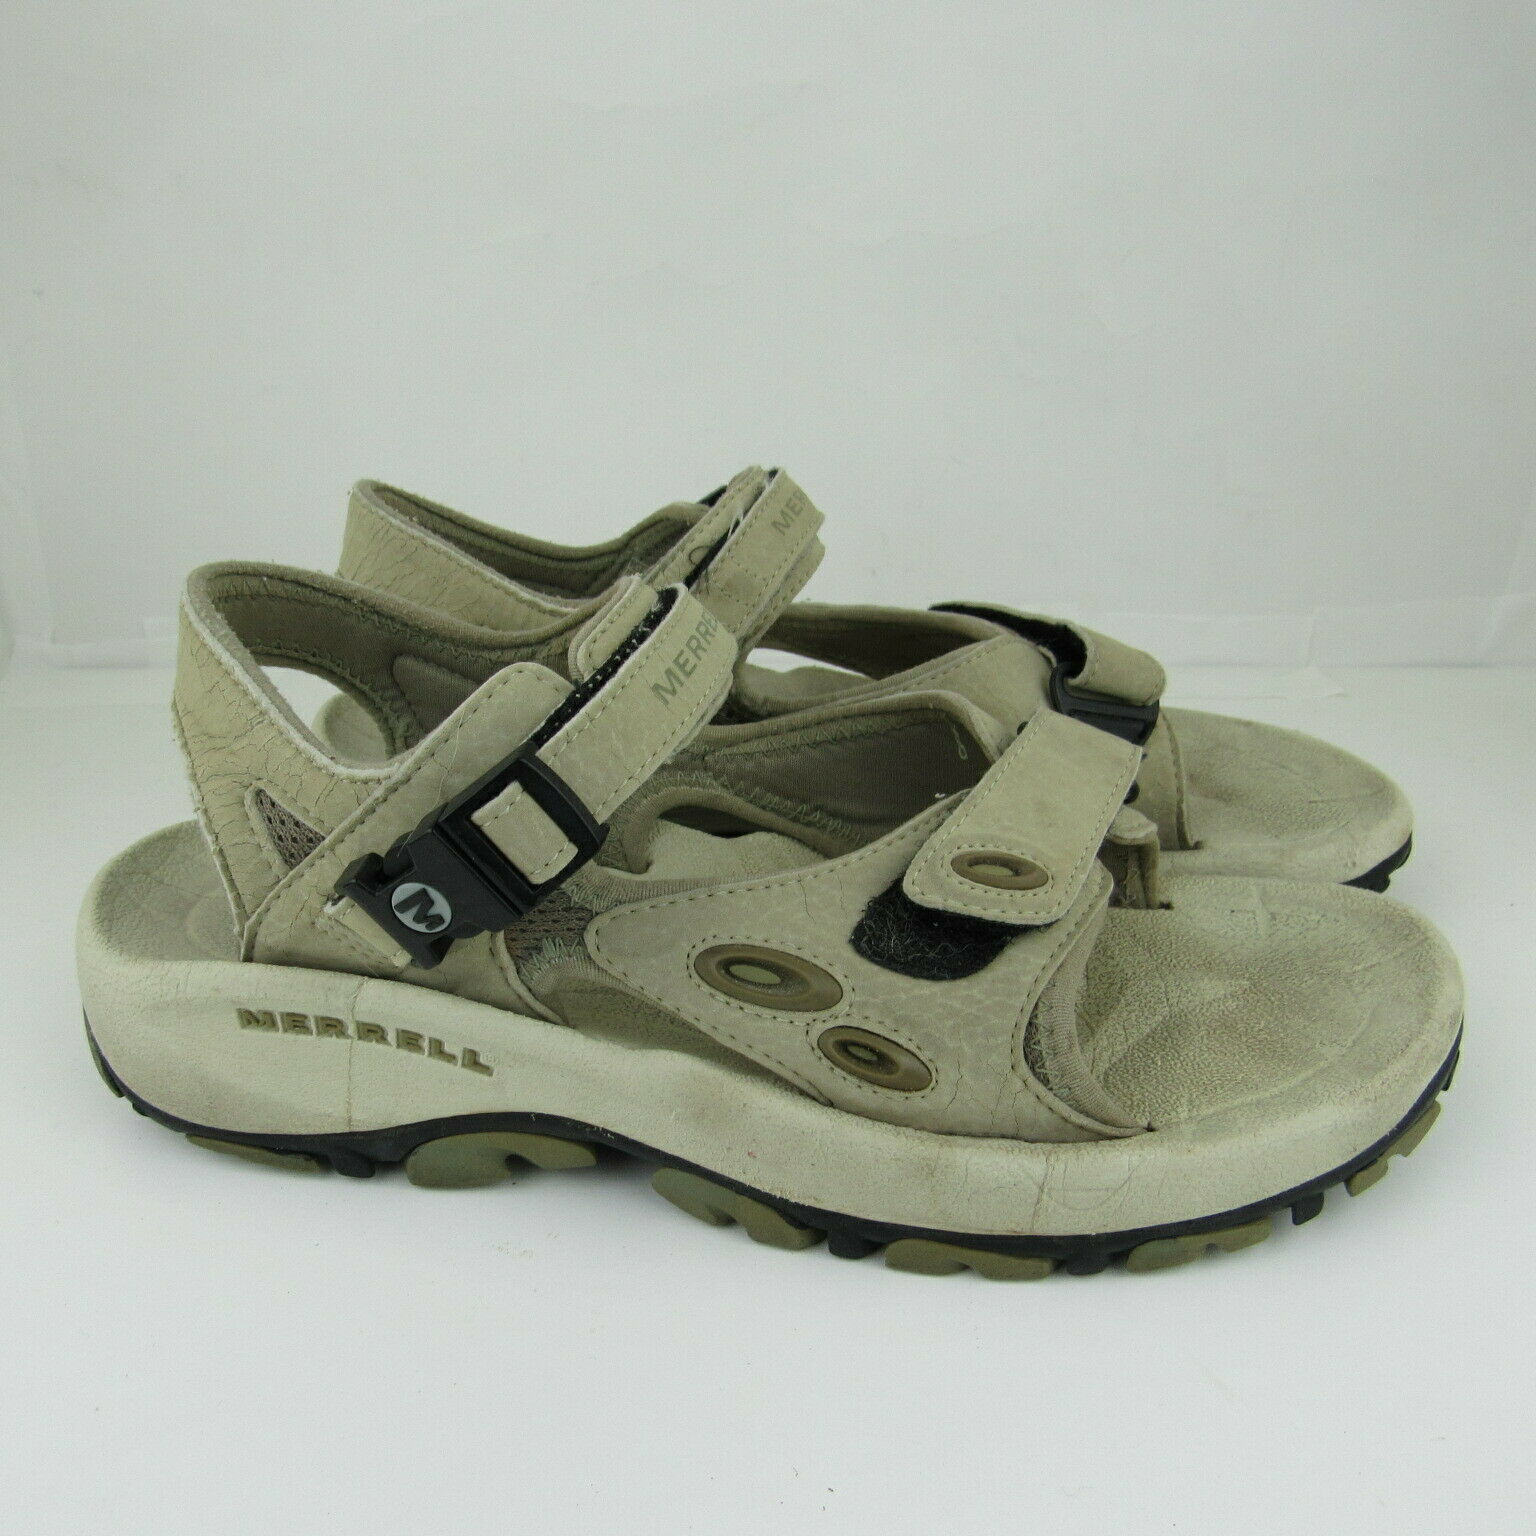 Merrell Mens Gray Trail Sandals Shoes Air Cushion Size 9 M Straps Comfort